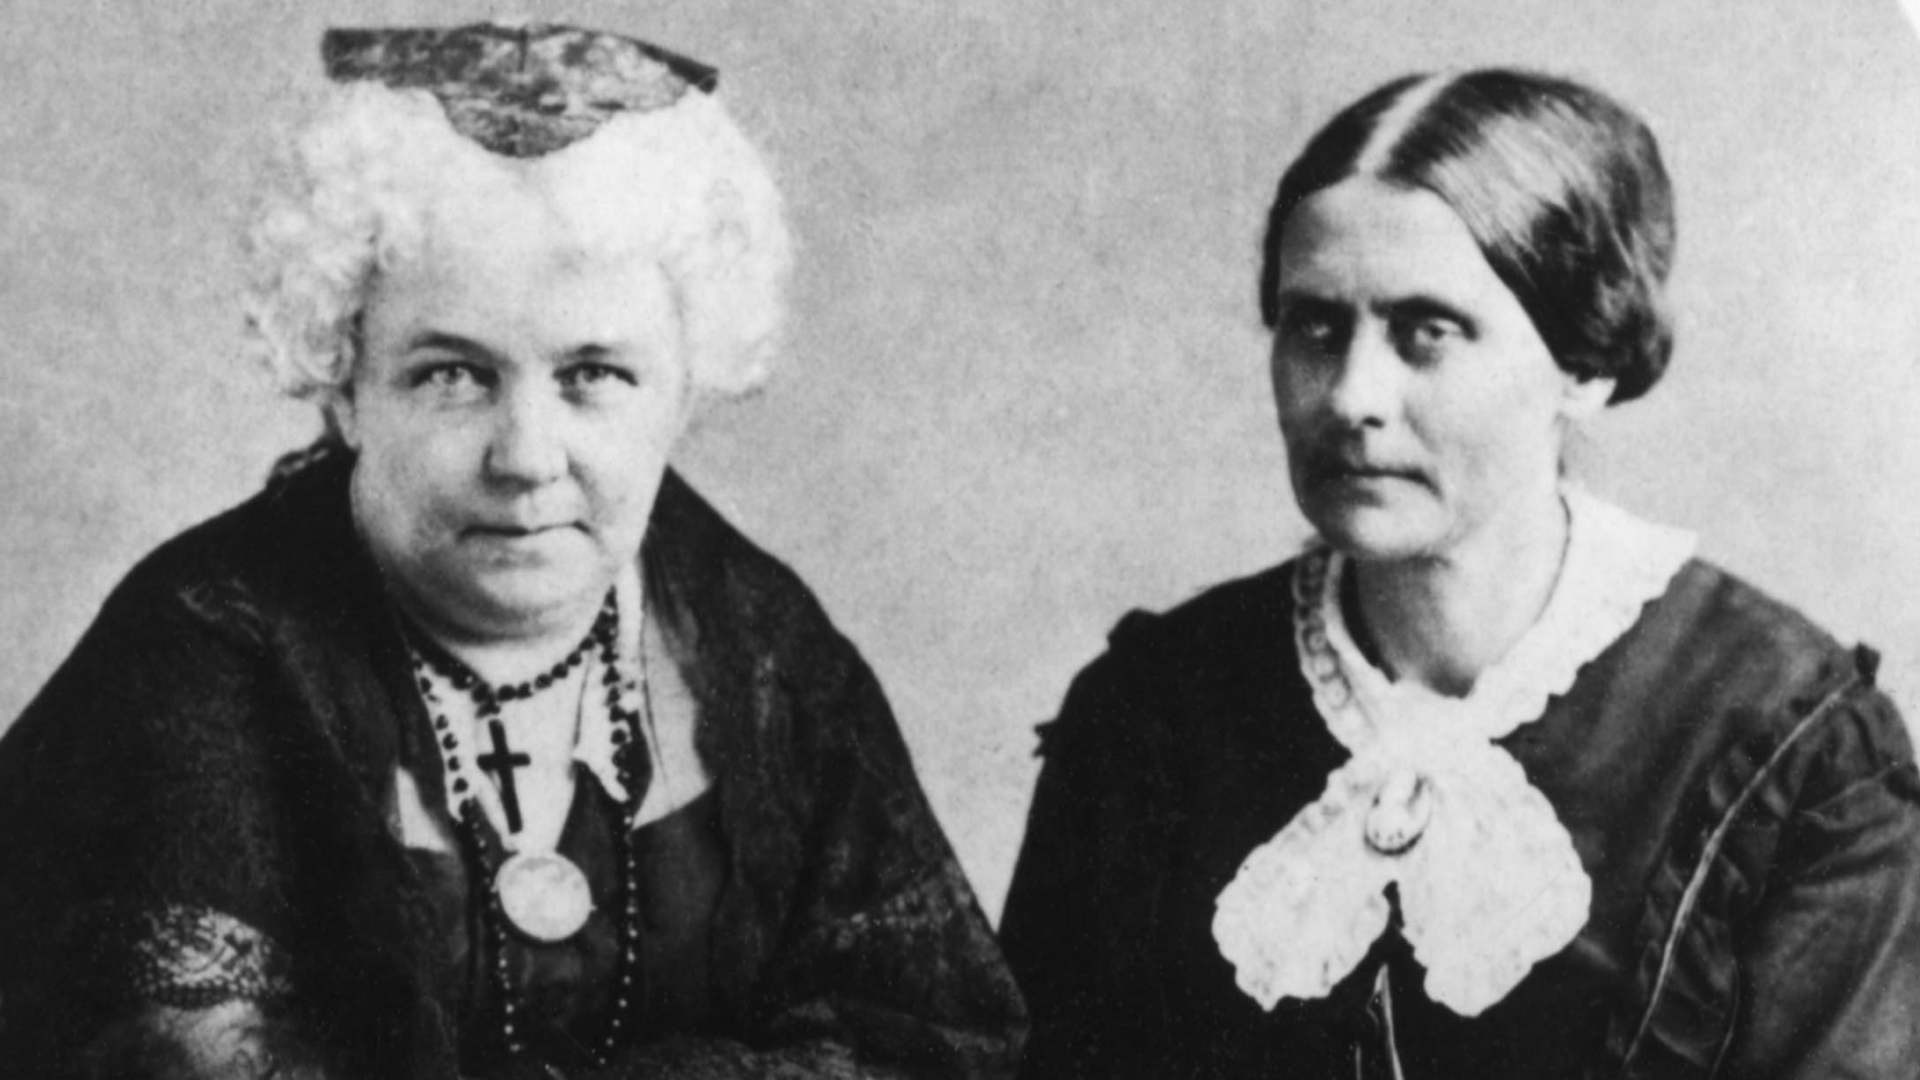 Elizabeth Cady Stanton and Susan B Anthony, founders of The National Woman Suffrage Association, 1881. (Credit: Bettmann Archive/Getty Images)